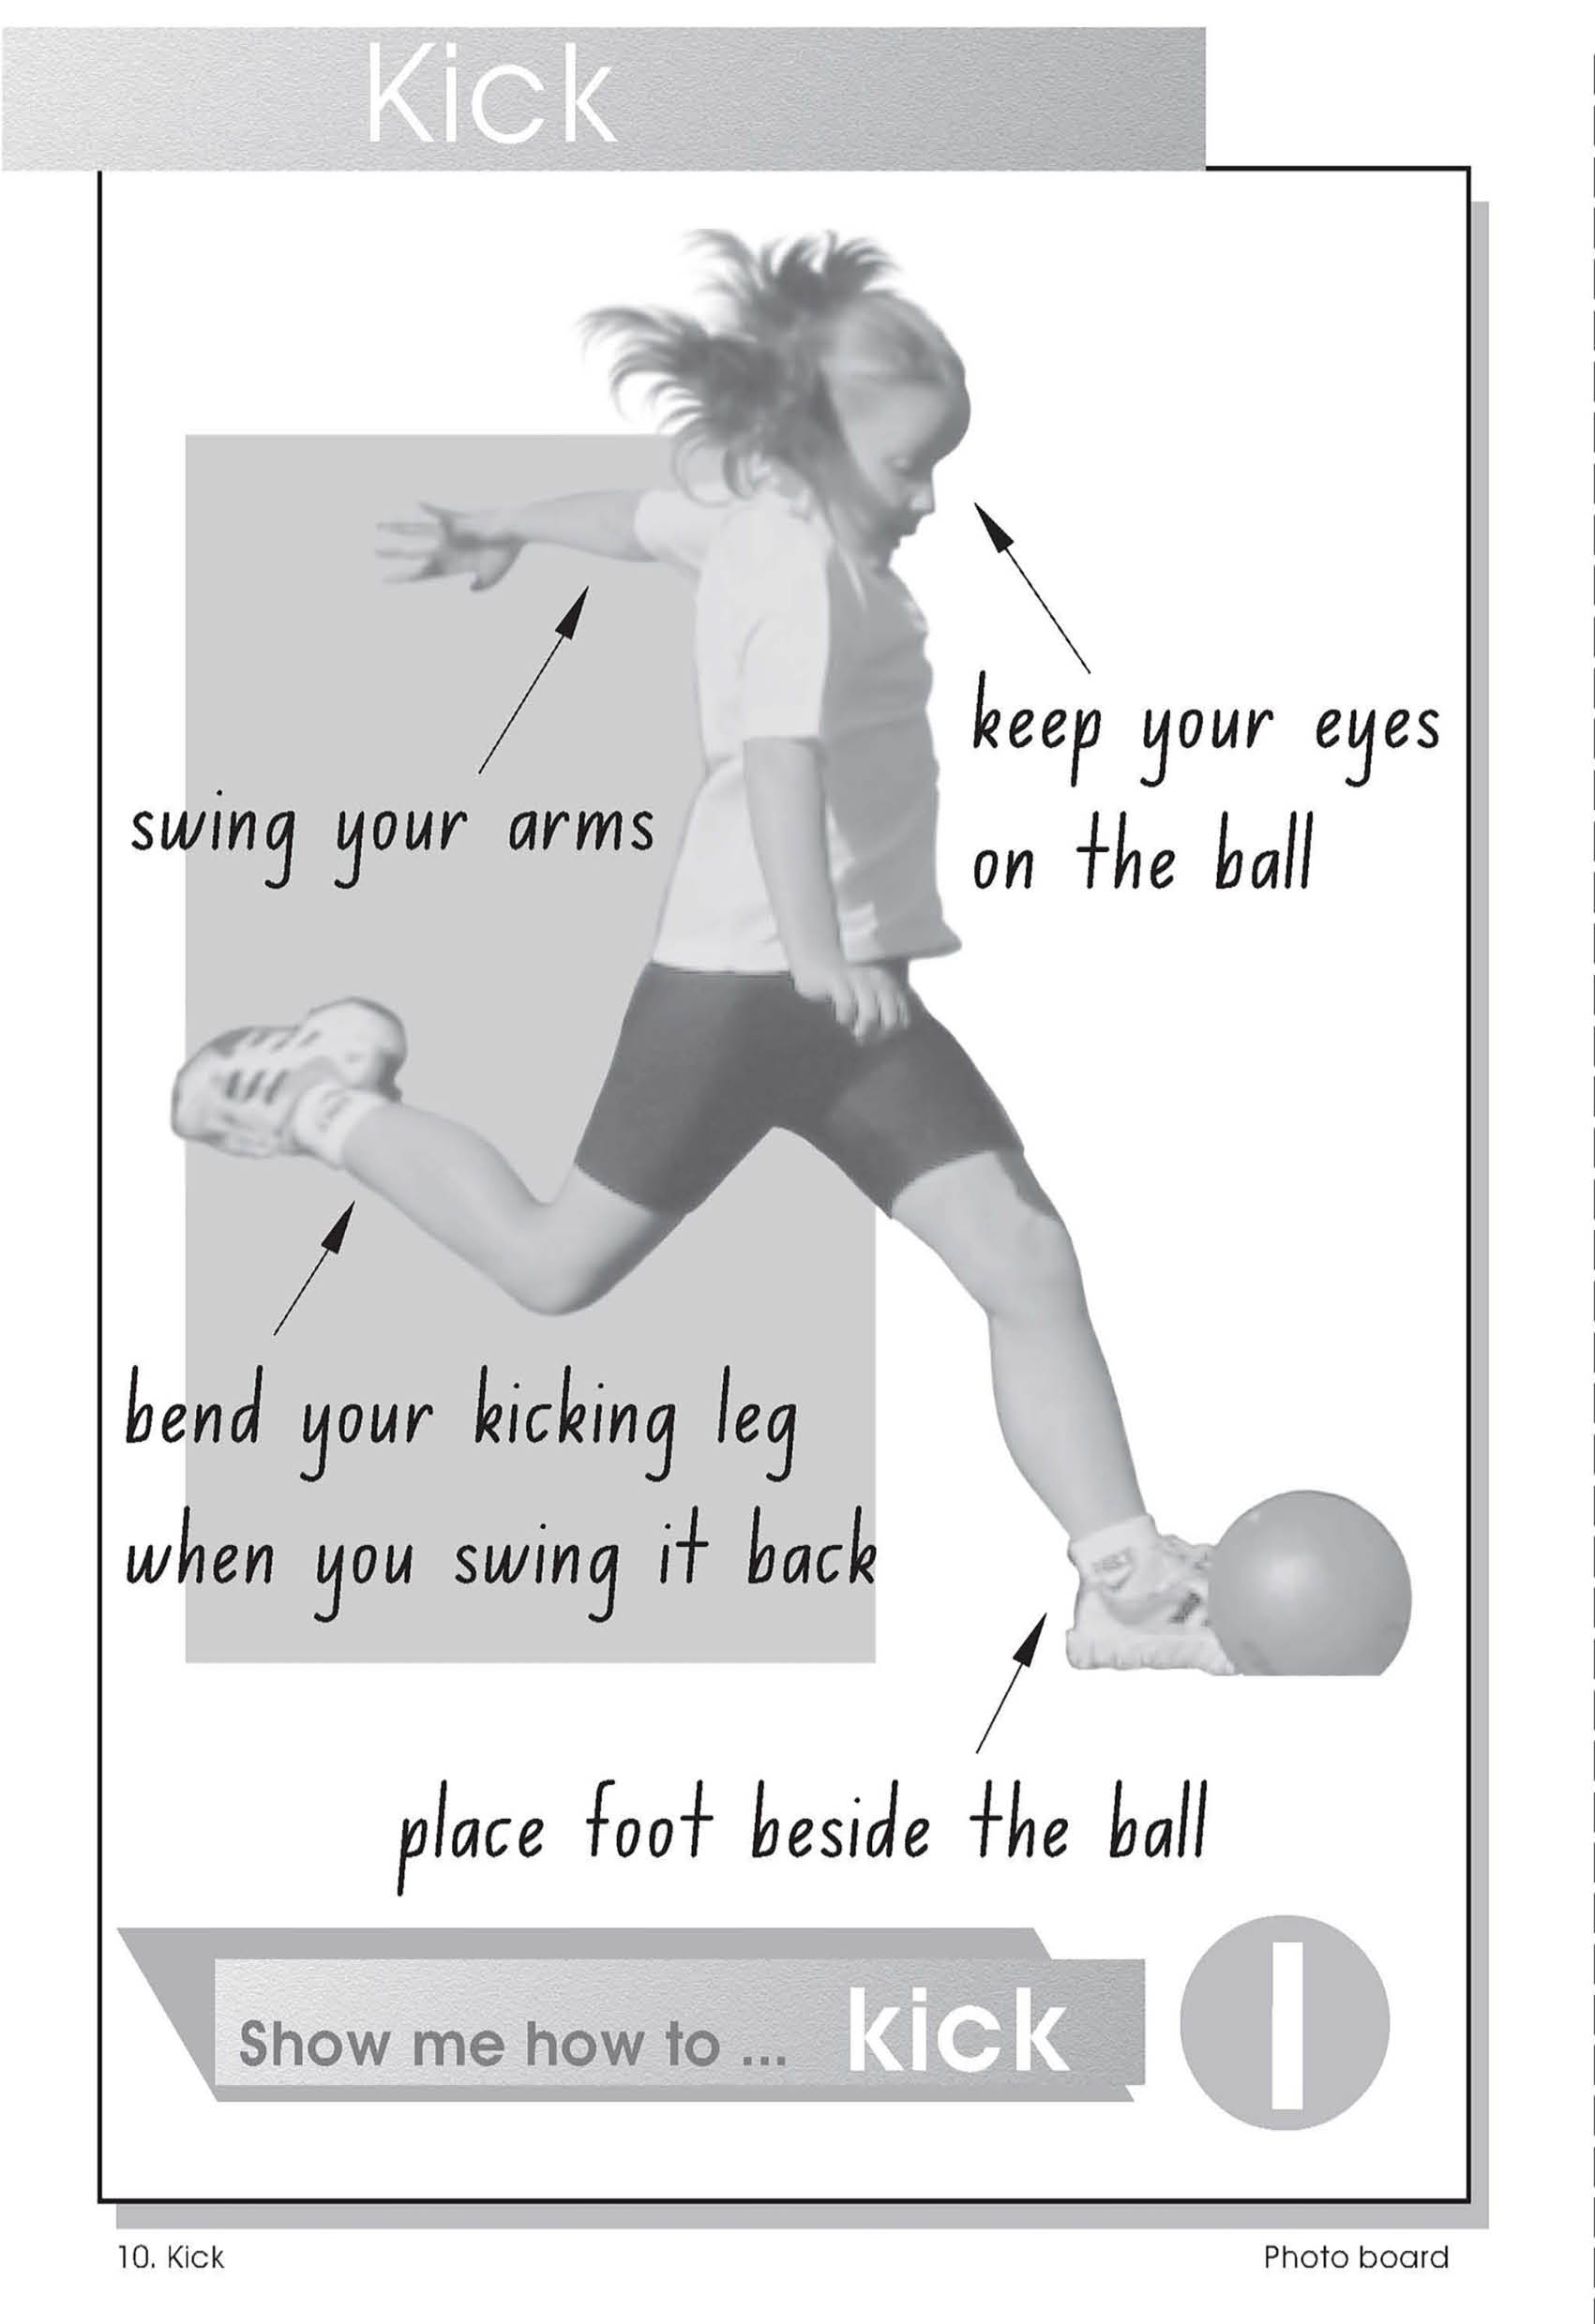 Observational poster - how to kick